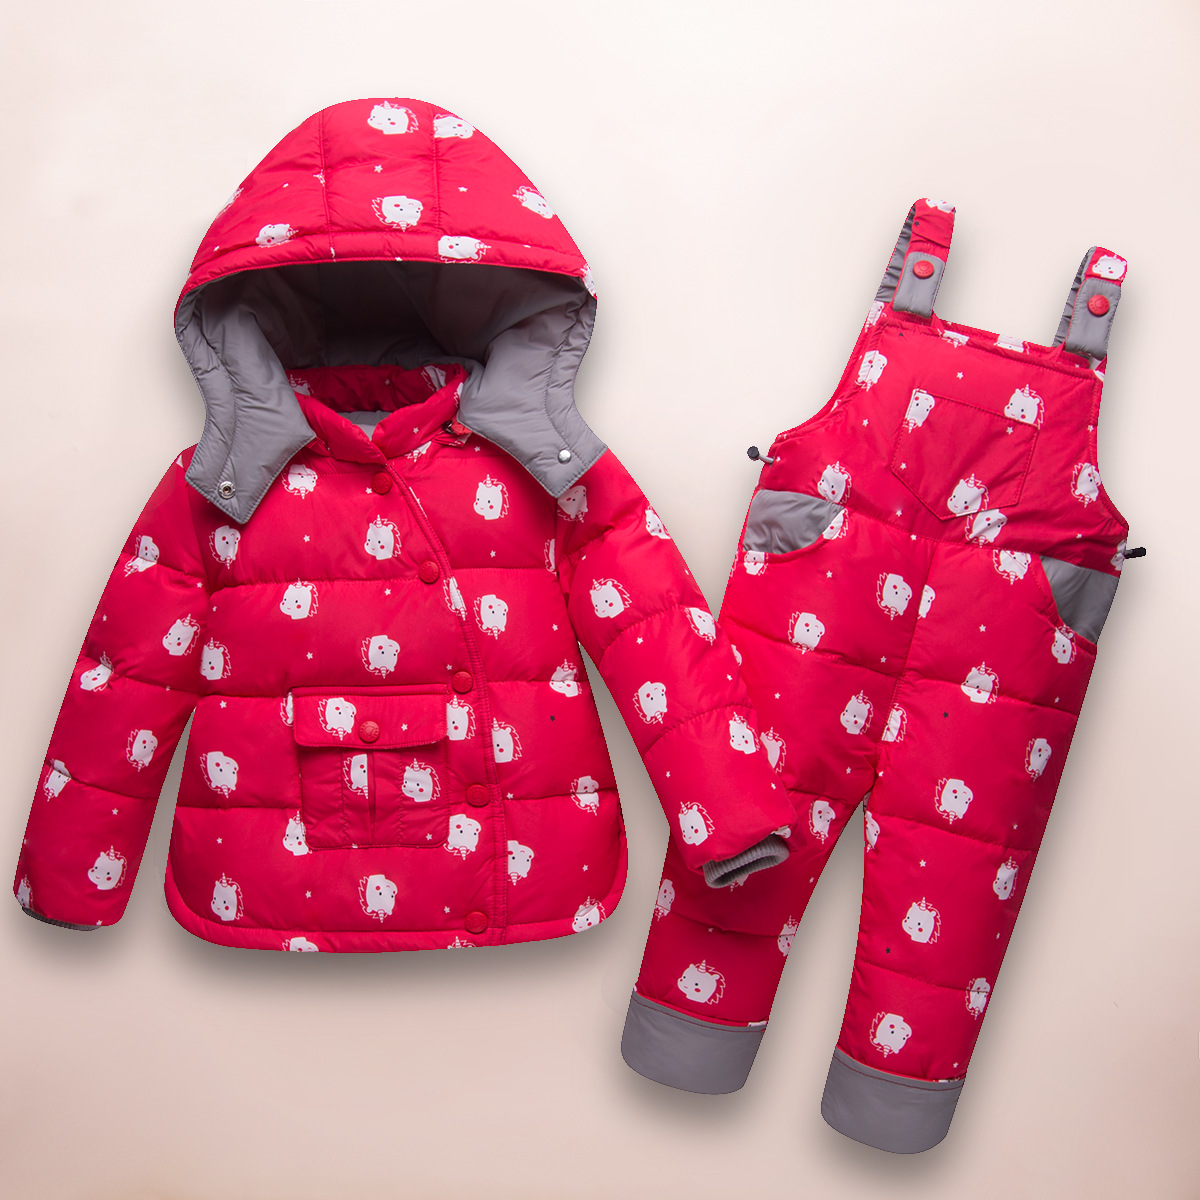 2018 Winter Children's Clothing Sets Russia Baby Girl Ski Suit Sets Boy Outdoor Warm Kids Down Coats Jackets+suspender Trousers 2018 winter children clothing set russia baby girl snow wear boy s outdoor snowsuit kids down coats jackets trousers 30degree